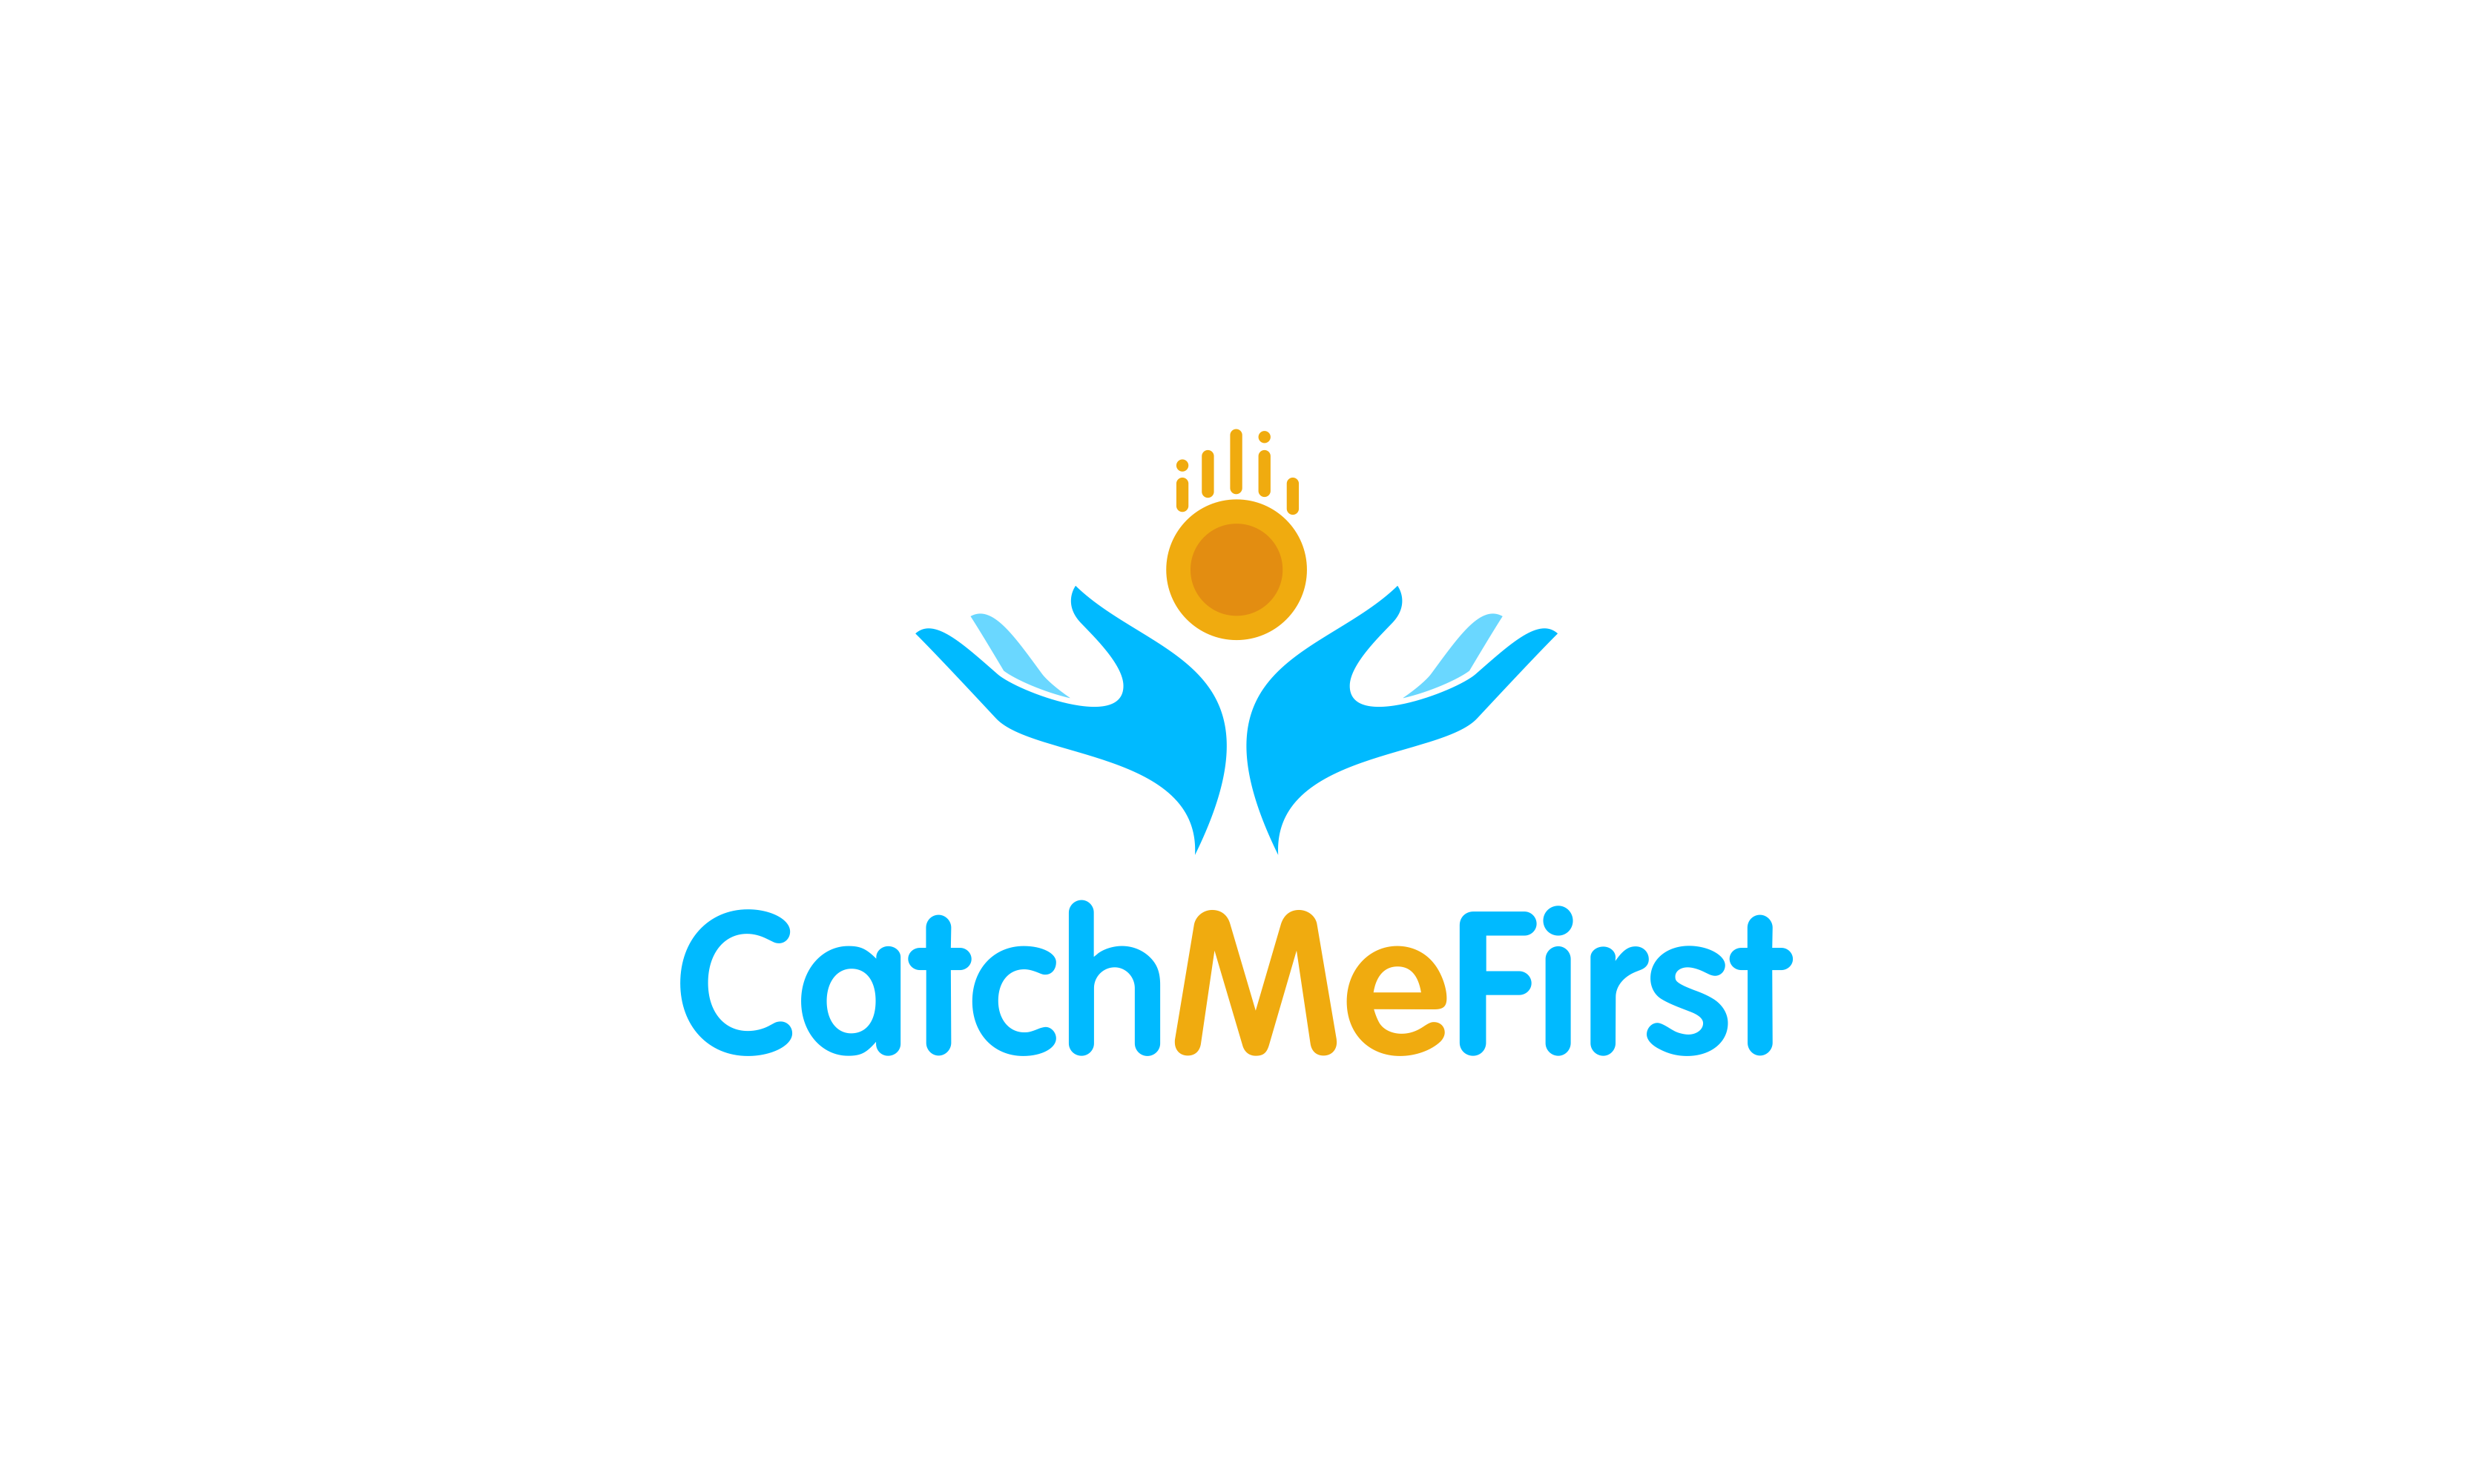 Catchmefirst